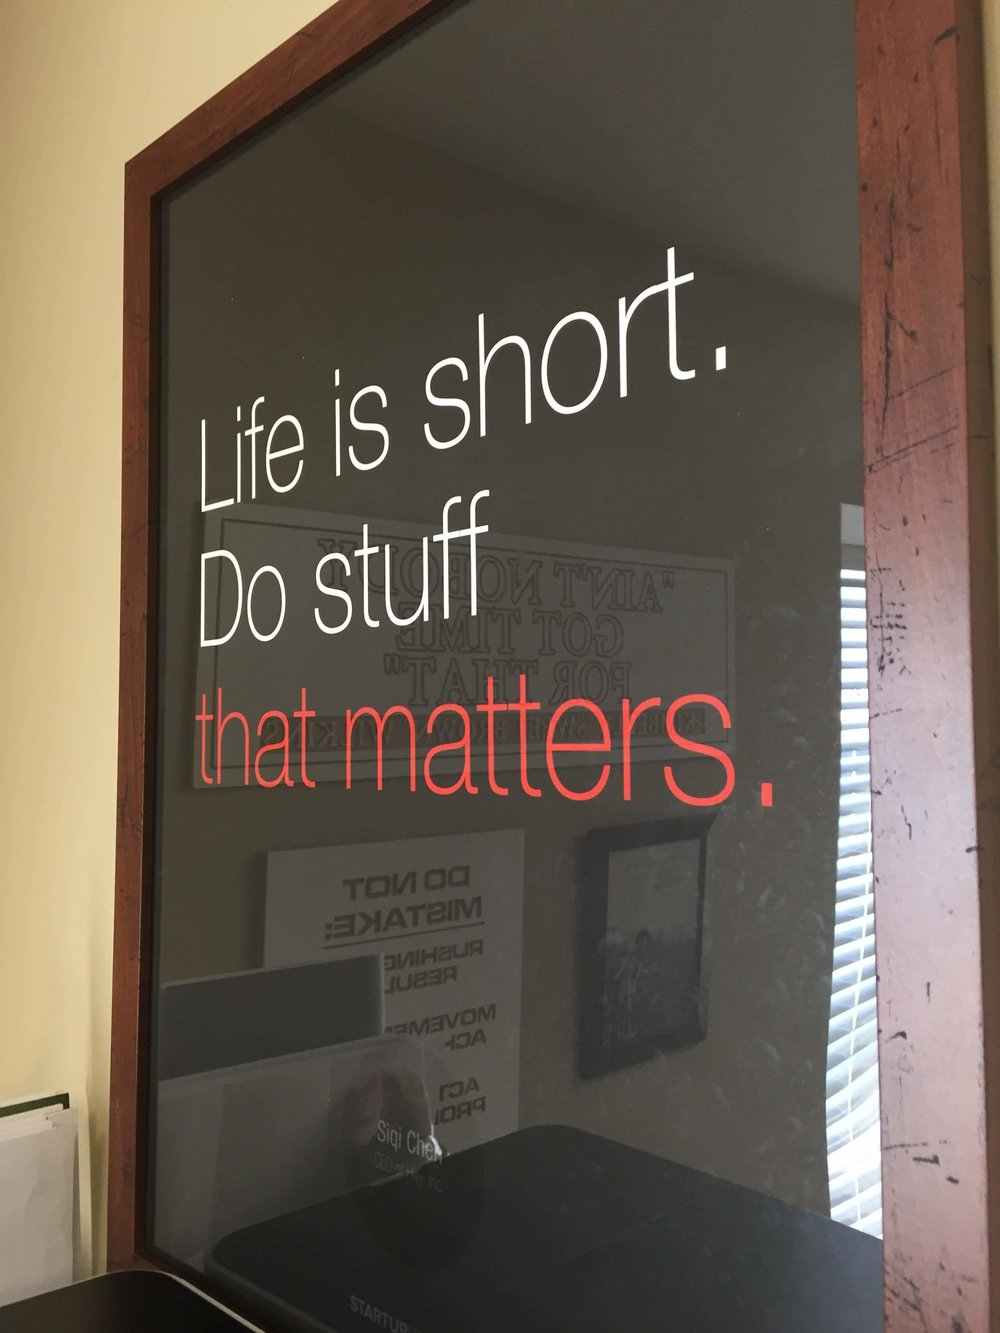 Life is short, do stuff that matters